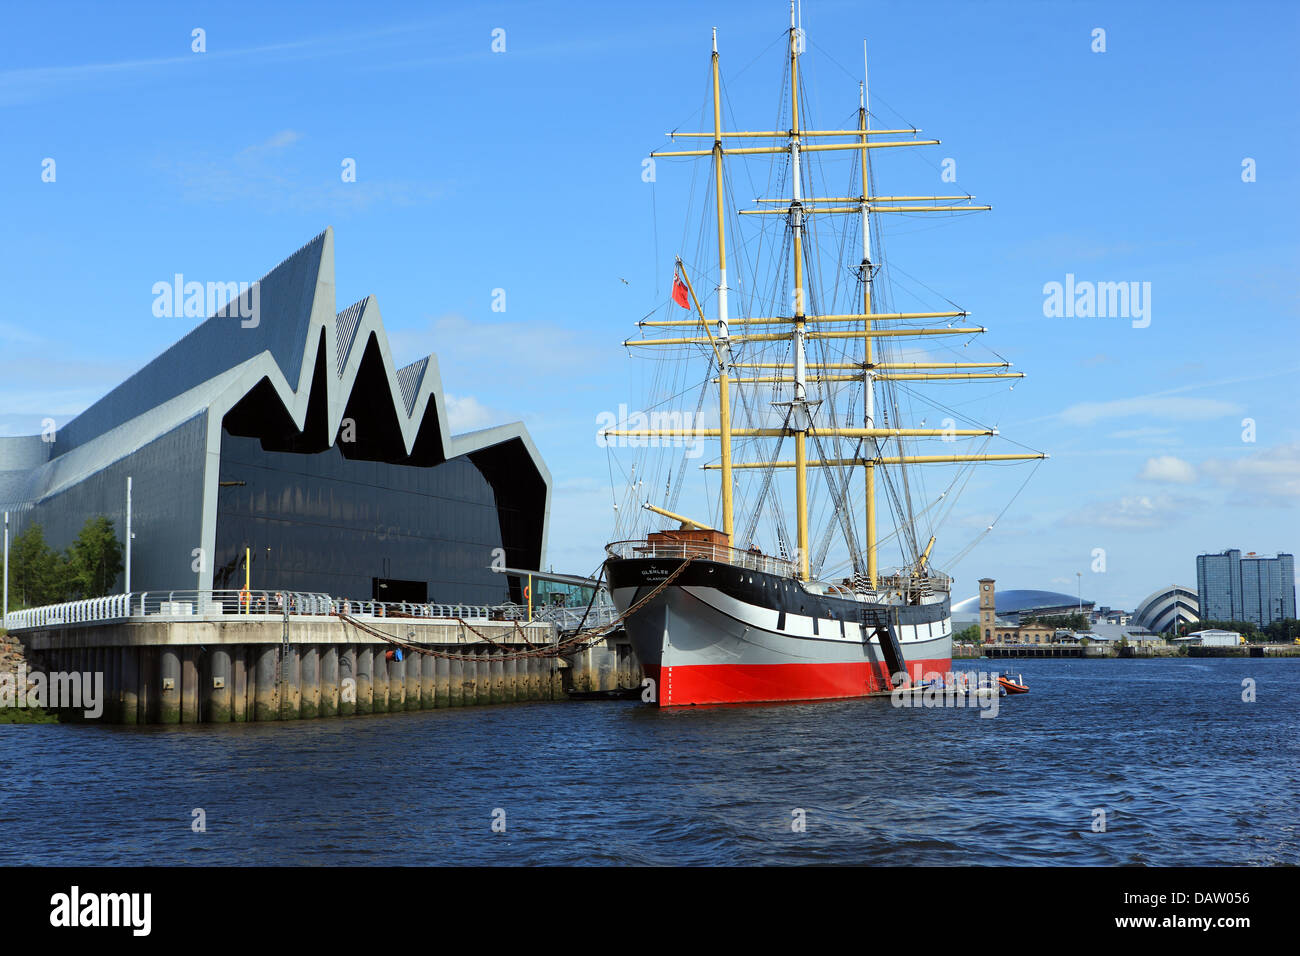 tall-ship-glenlee-moored-outside-the-riv